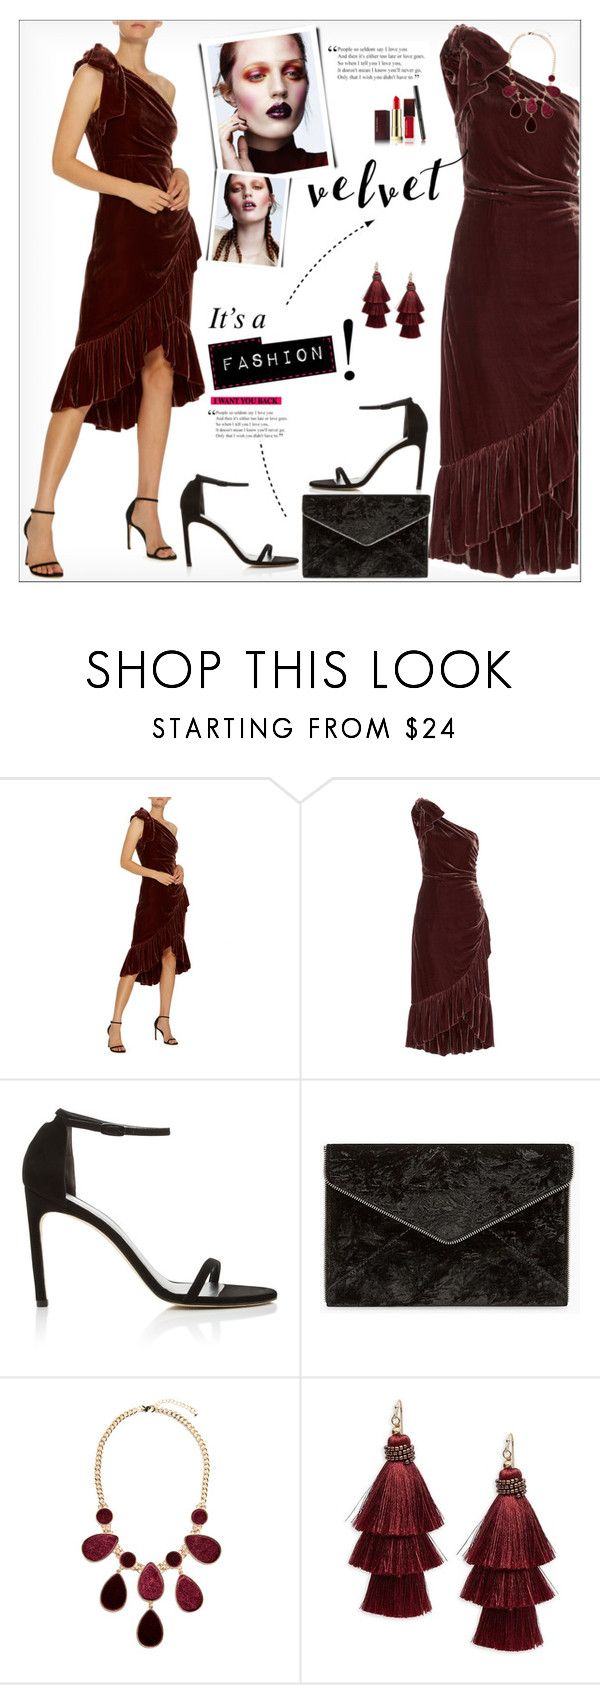 """Crushing on Velvet"" by alves-nogueira ❤ liked on Polyvore featuring Ulla Johnson, Stuart Weitzman, Rebecca Minkoff, GUESS by Marciano, Design Lab and Kevyn Aucoin"